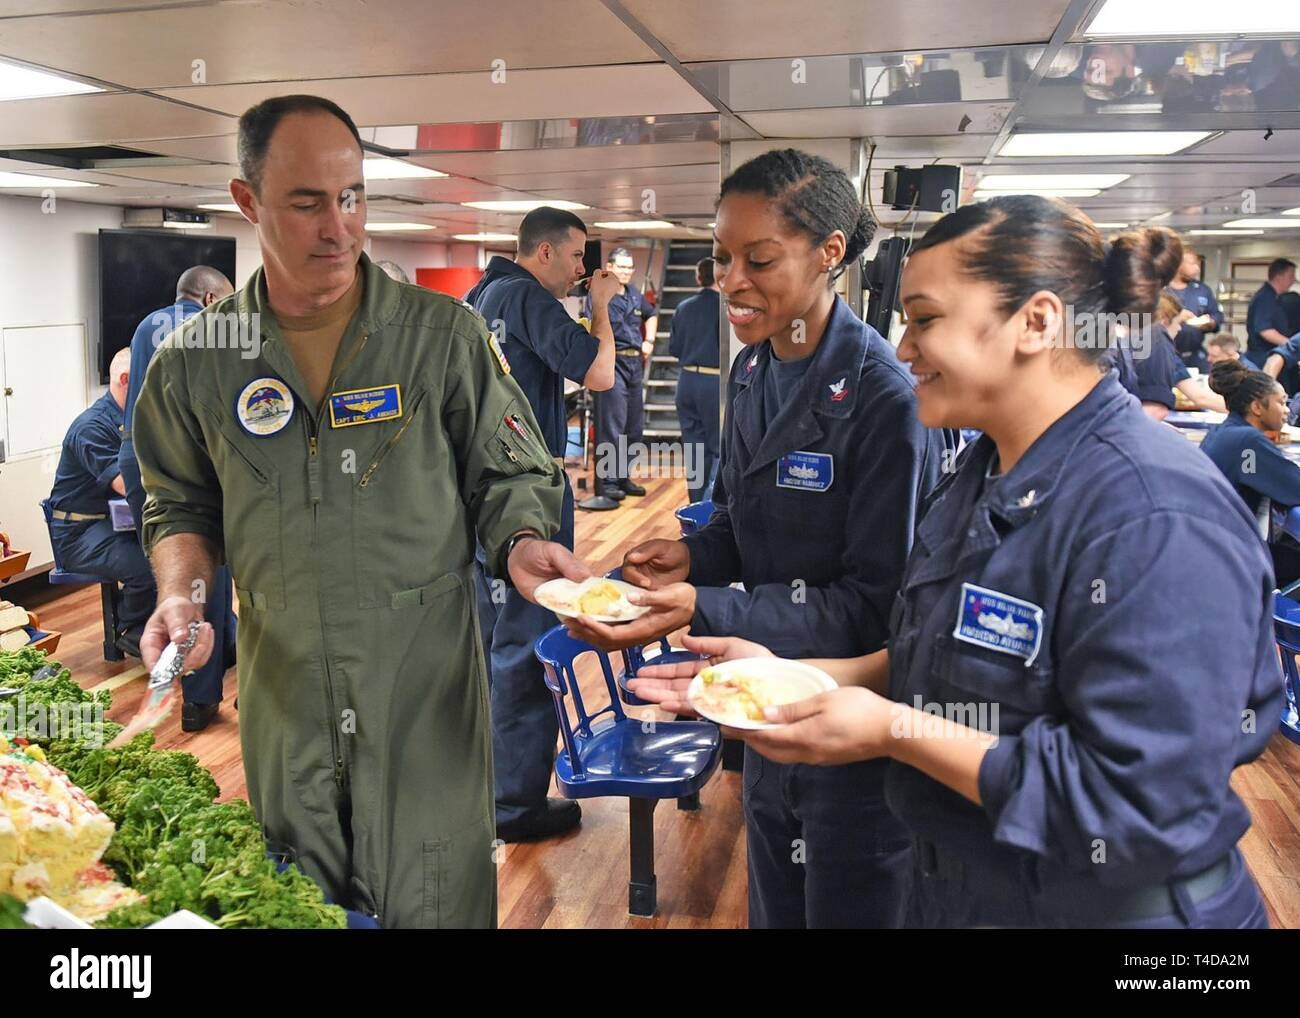 SOUTH CHINA SEA (March 22, 2019) - Capt. Eric J. Anduze, commanding officer of U.S. 7th Fleet Flagship USS Blue Ridge (LCC 19), serves cake to members of the crew during a Women's History Month celebration on the ship's mess decks. Blue Ridge is the oldest operational ship in the Navy and, as 7th Fleet command ship, actively works to foster relationships with allies and partners in the Indo-Pacific Region. - Stock Image